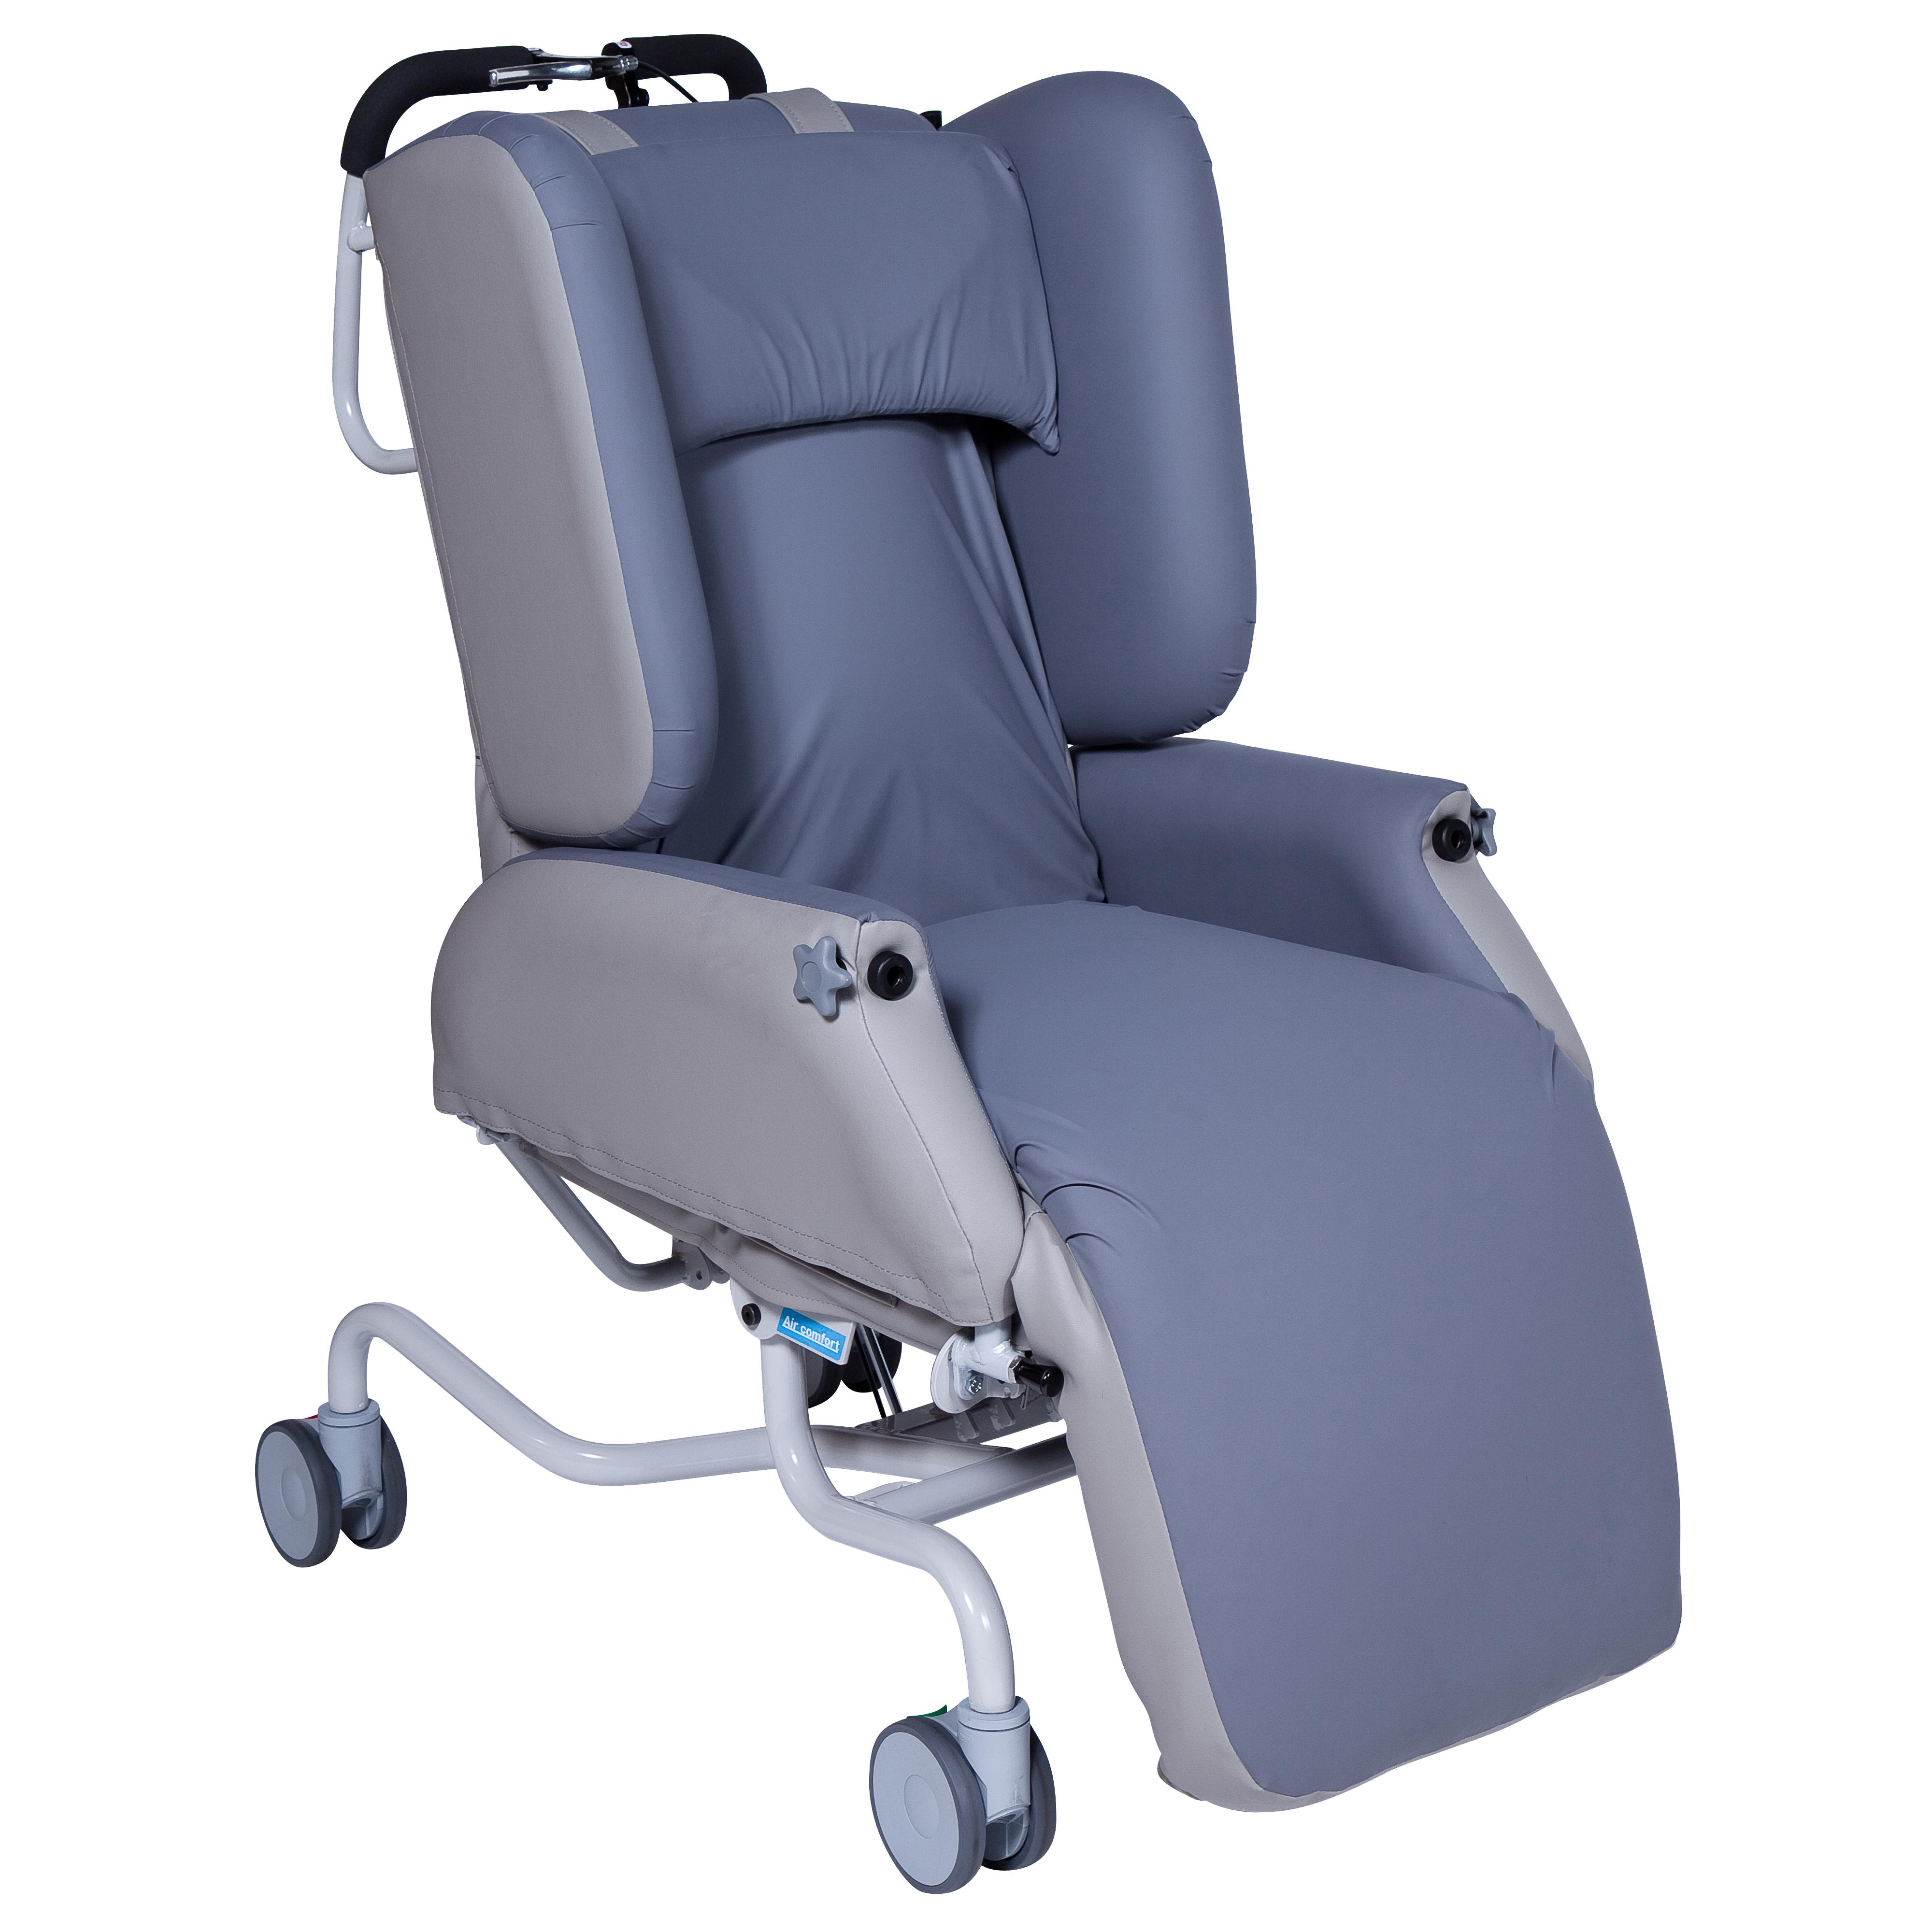 Air Comfort Deluxe V2 Standard Total Mobility